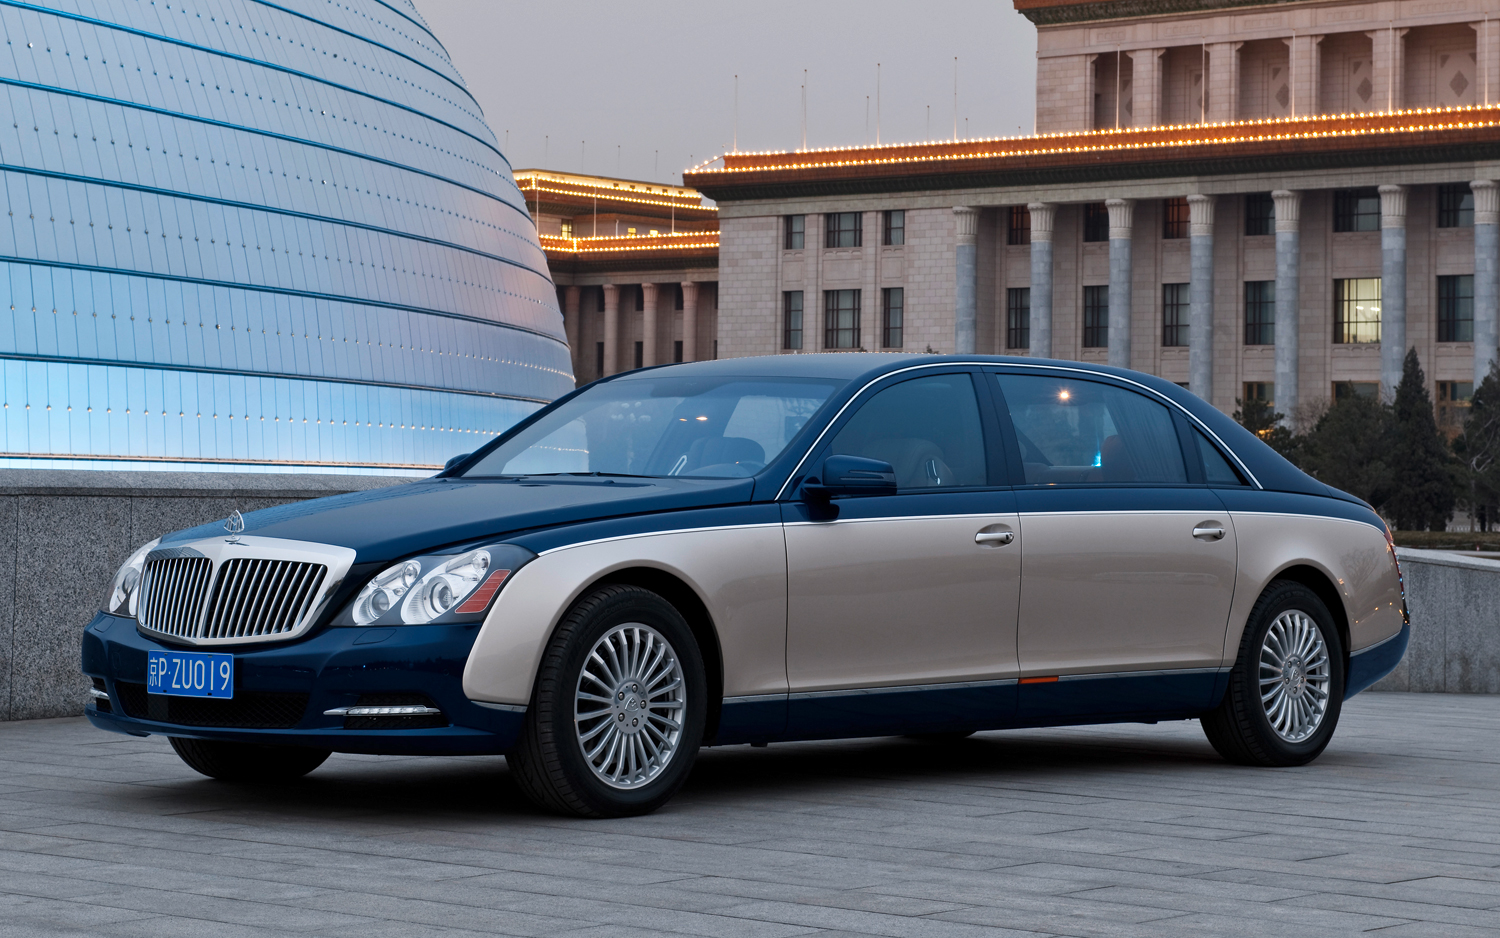 Maybach Lost Some $400,000 on Each Car it Sold, Report Says - Motor ...